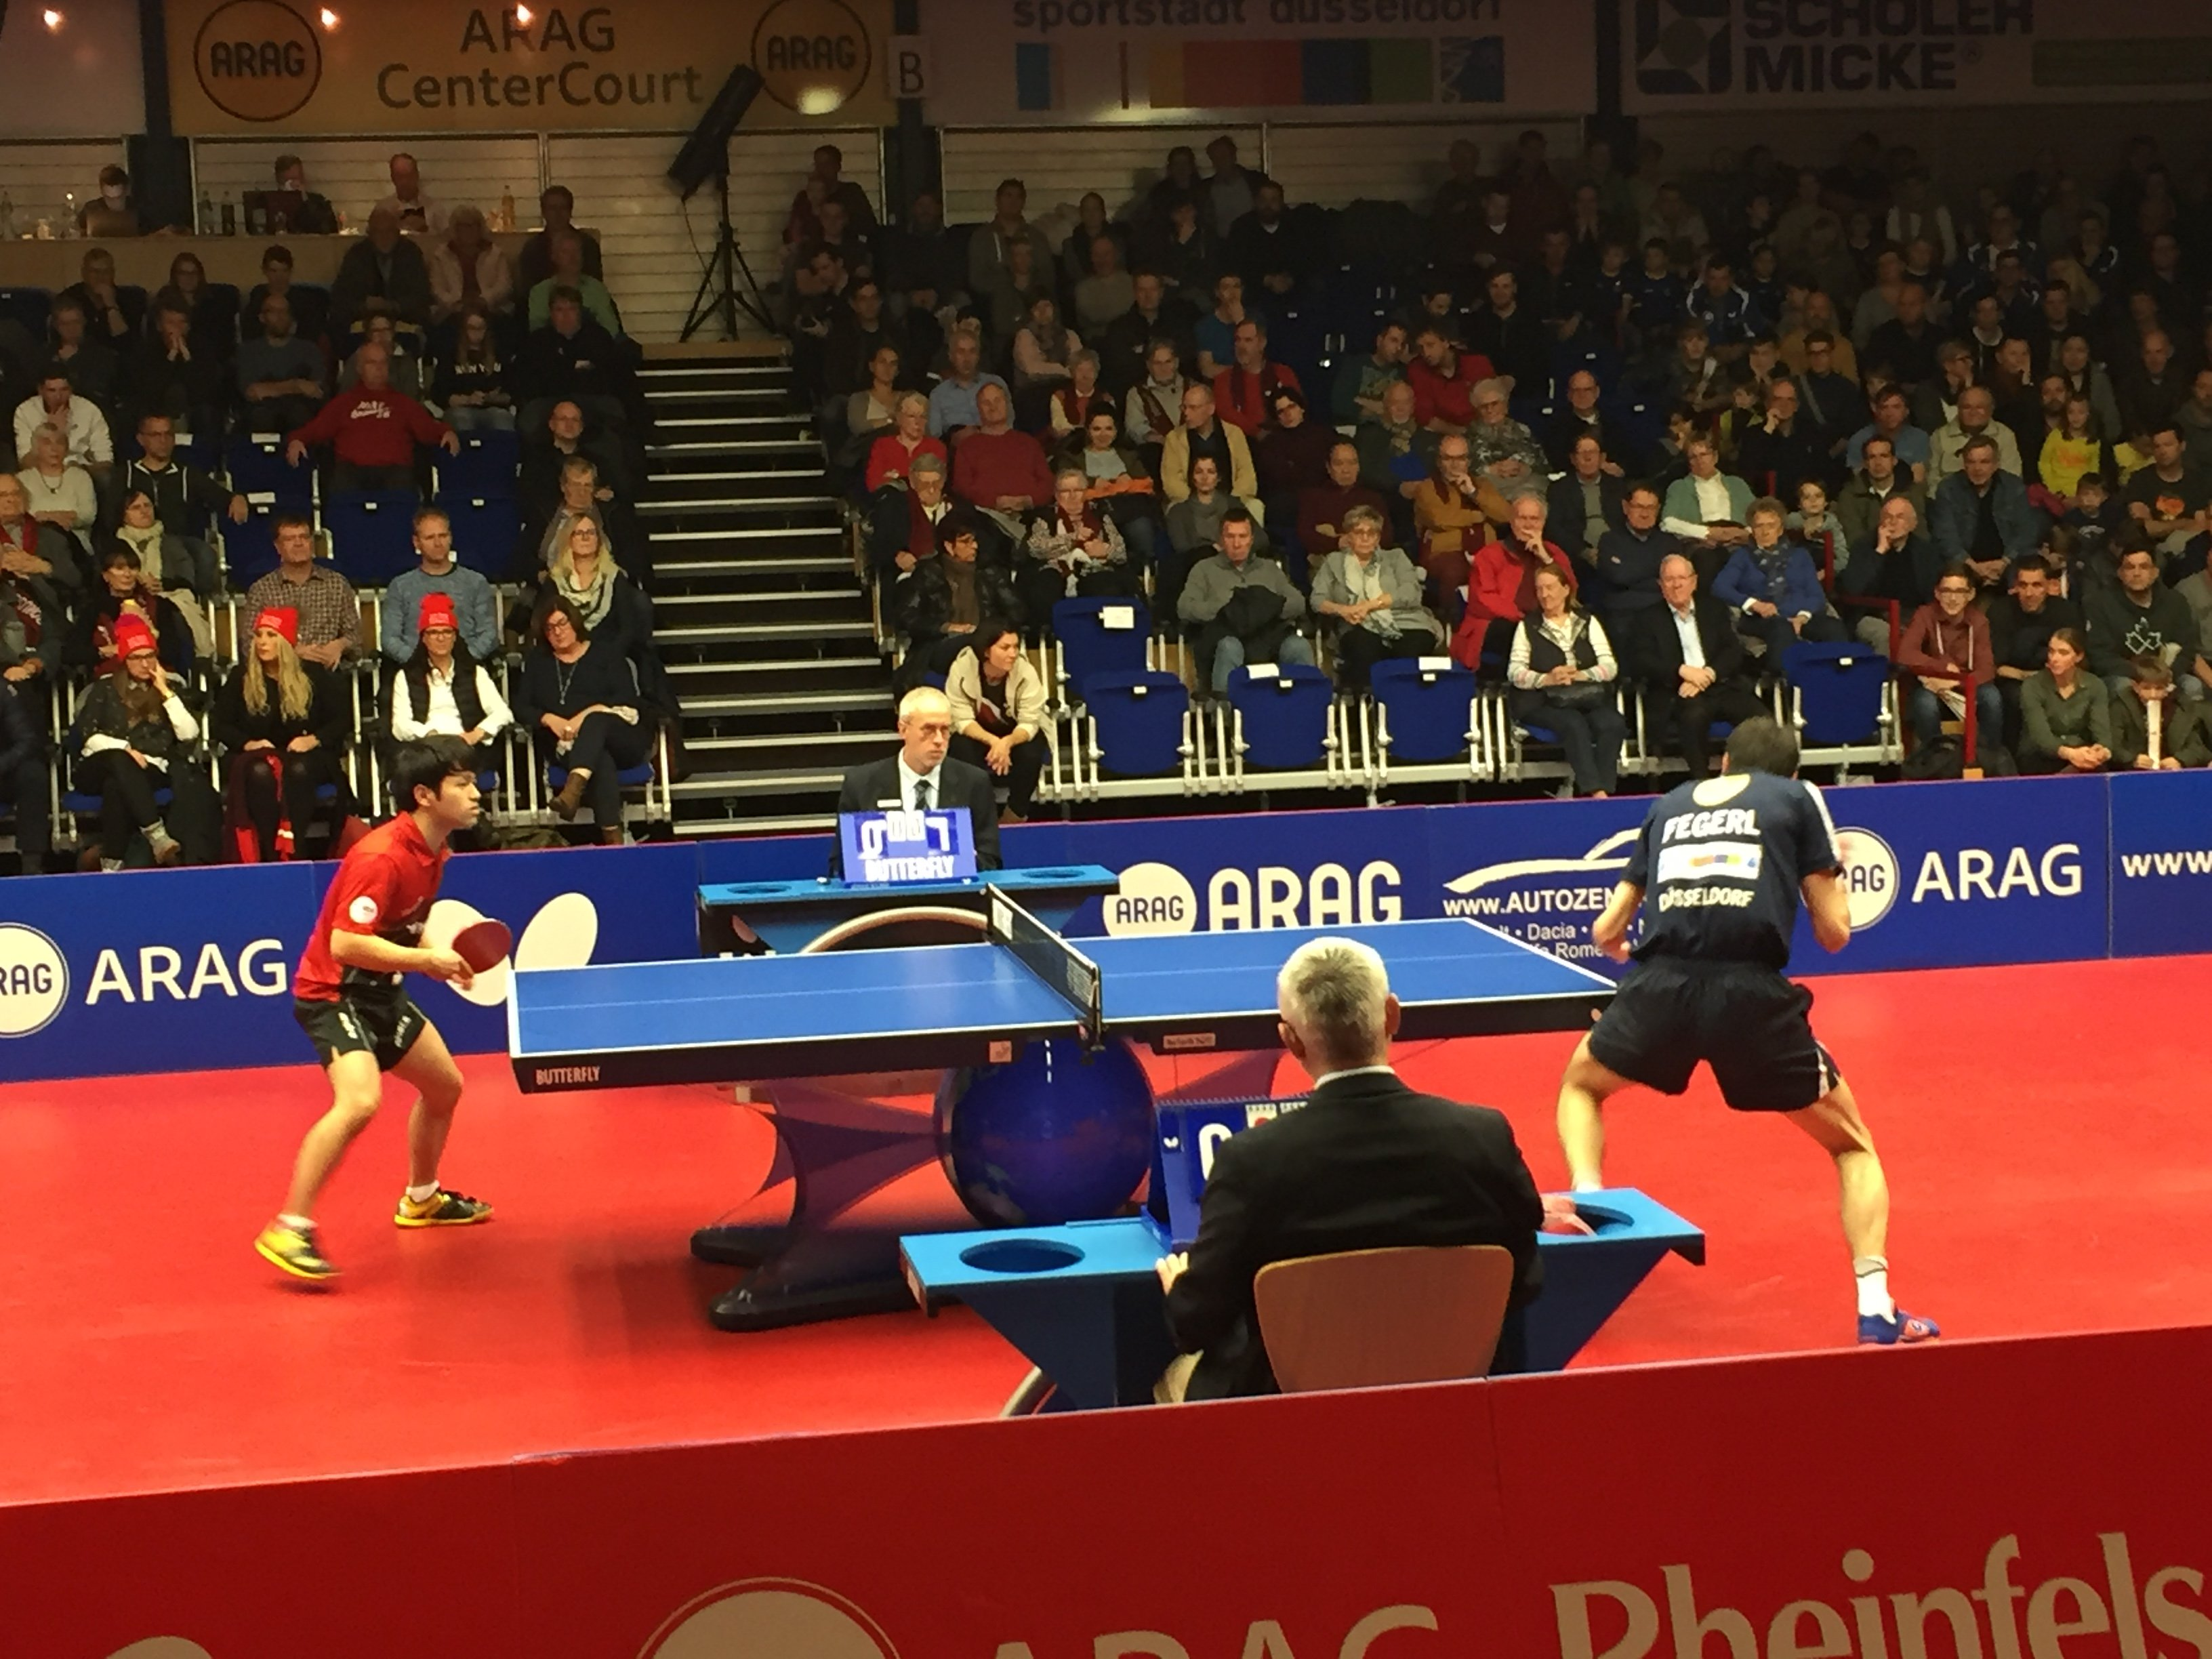 Individual or Group Table Tennis Coaching?